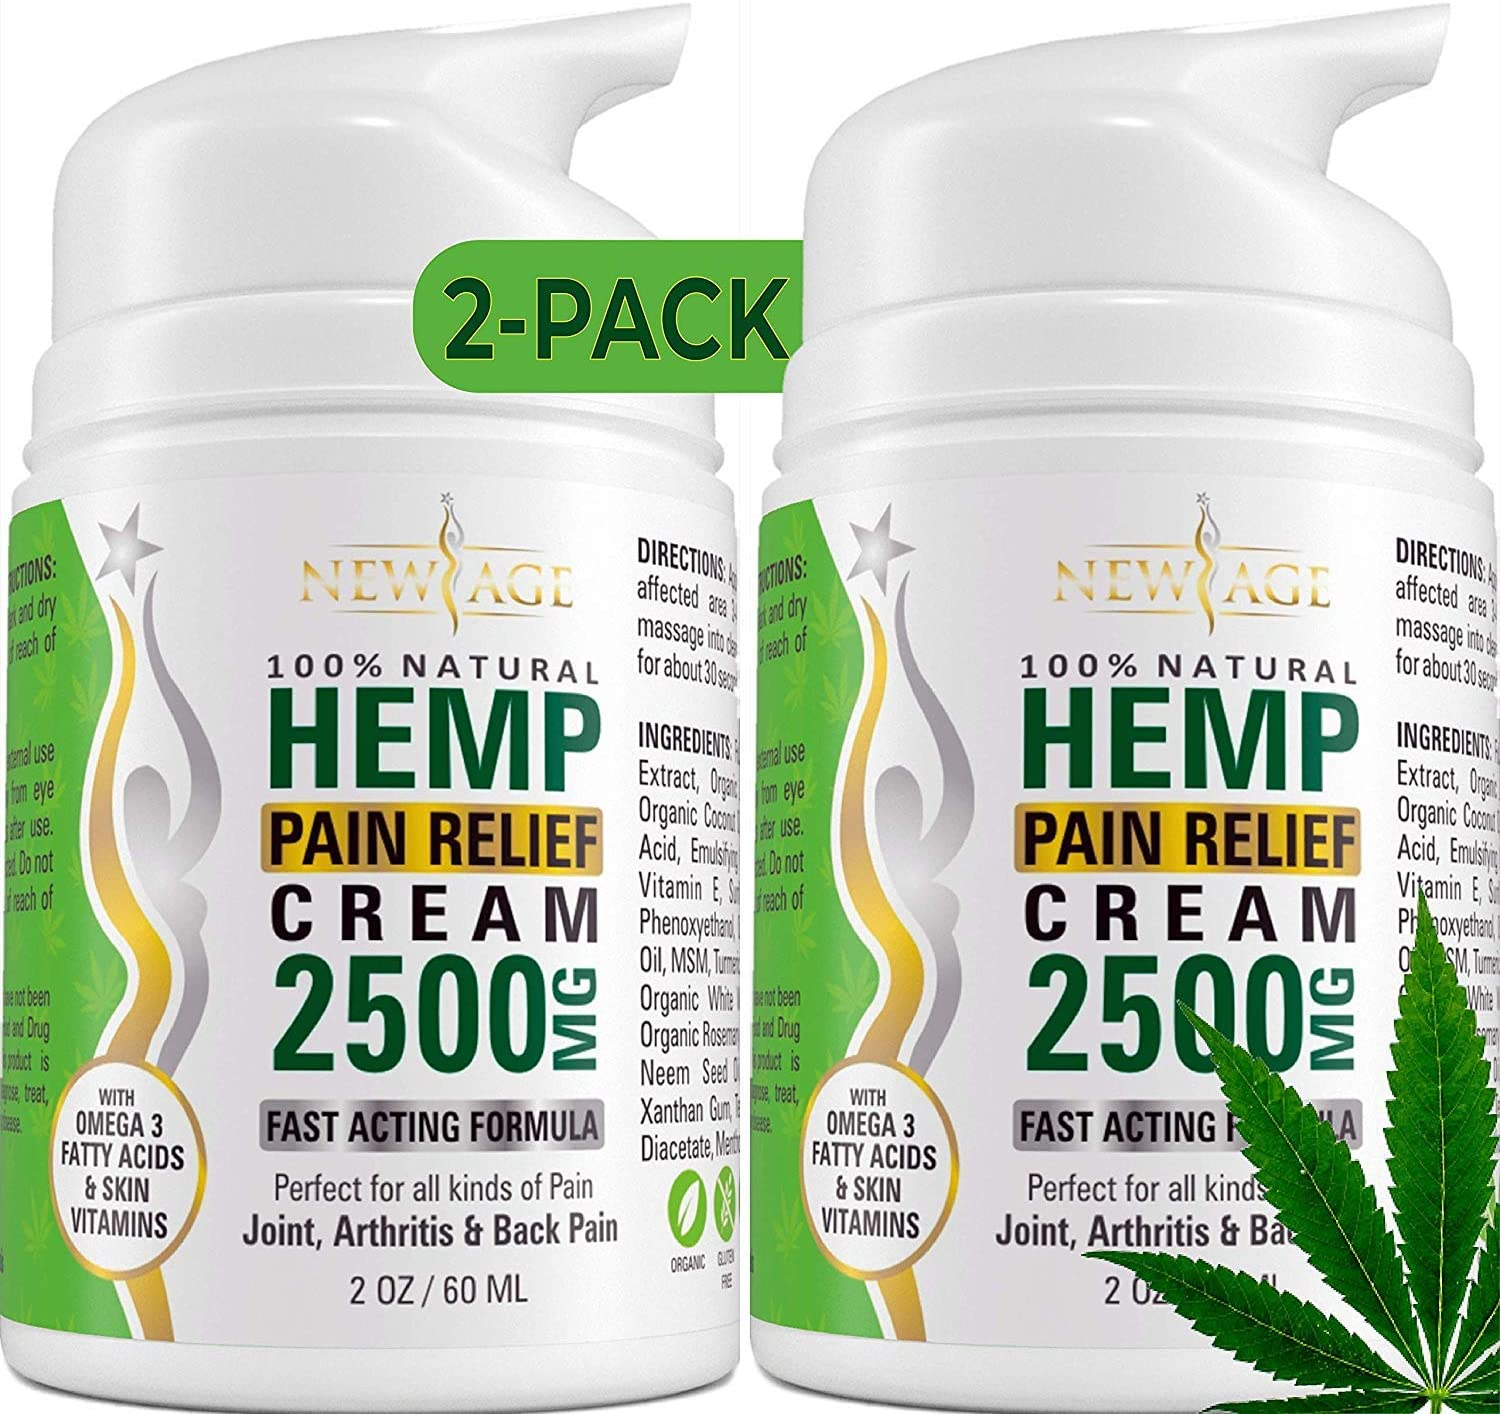 (2-Pack) Hemp Cream Pain Relief by New Age - Natural Hemp Extract Cream for Arthritis, Back Pain Muscle Pain Relief - Efficient Inflammation Cream & Carpal Tunnel Relief - Made in USA - Good for Skin